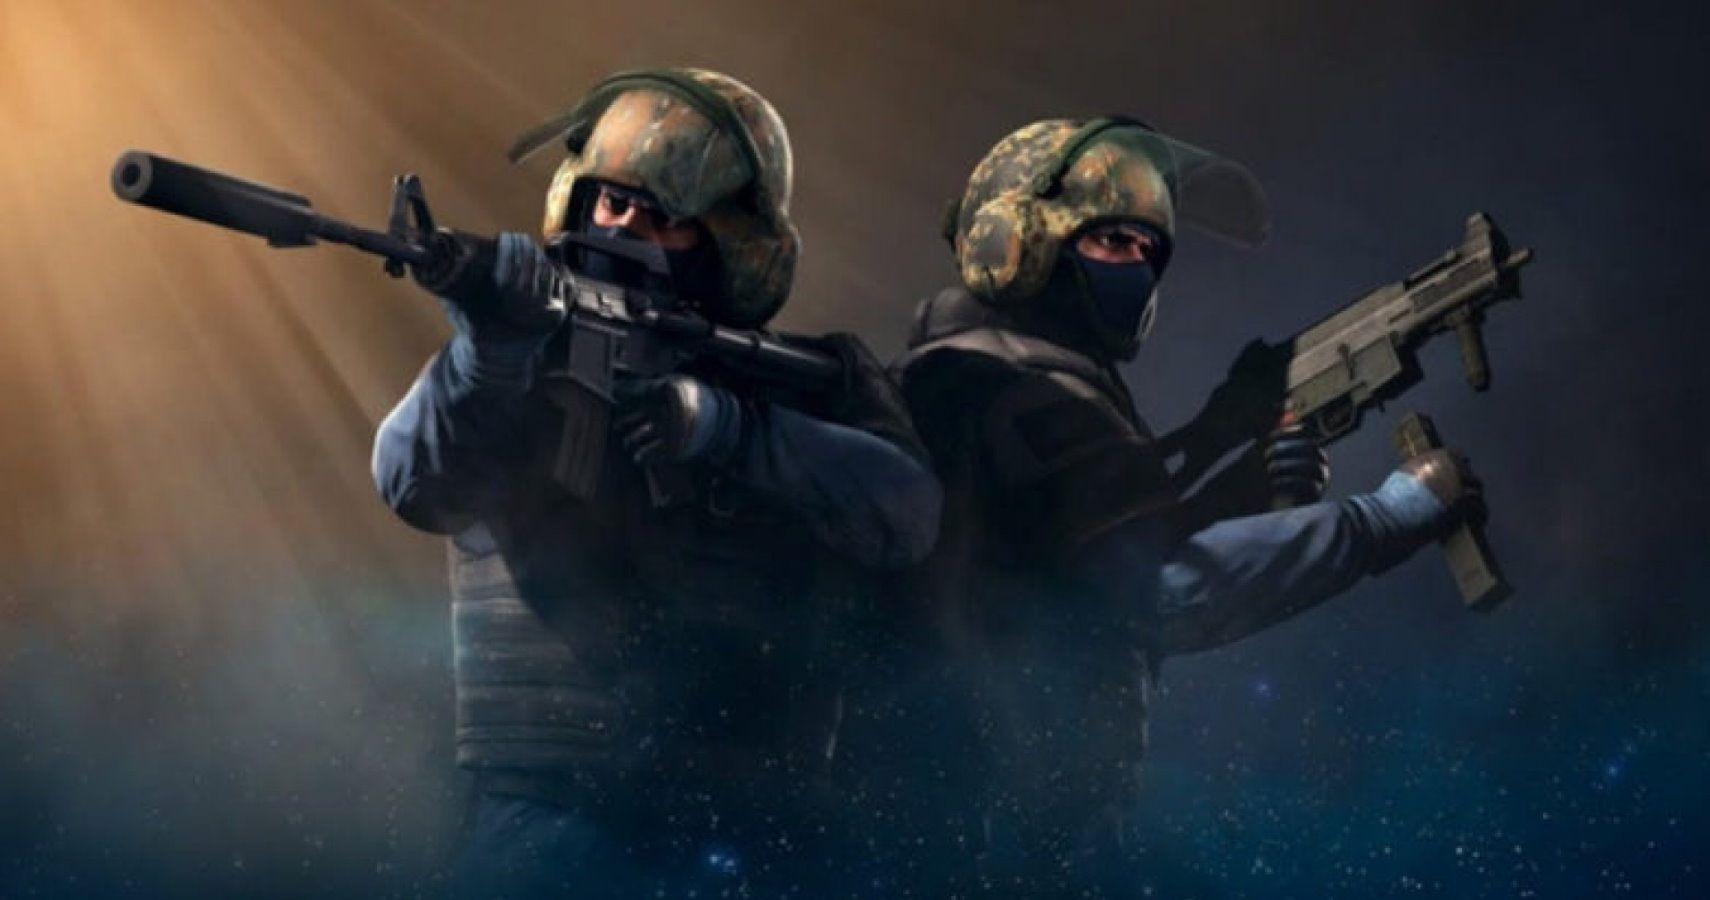 CS: GO Is Still On Top With 1 Million Concurrent Steam Players